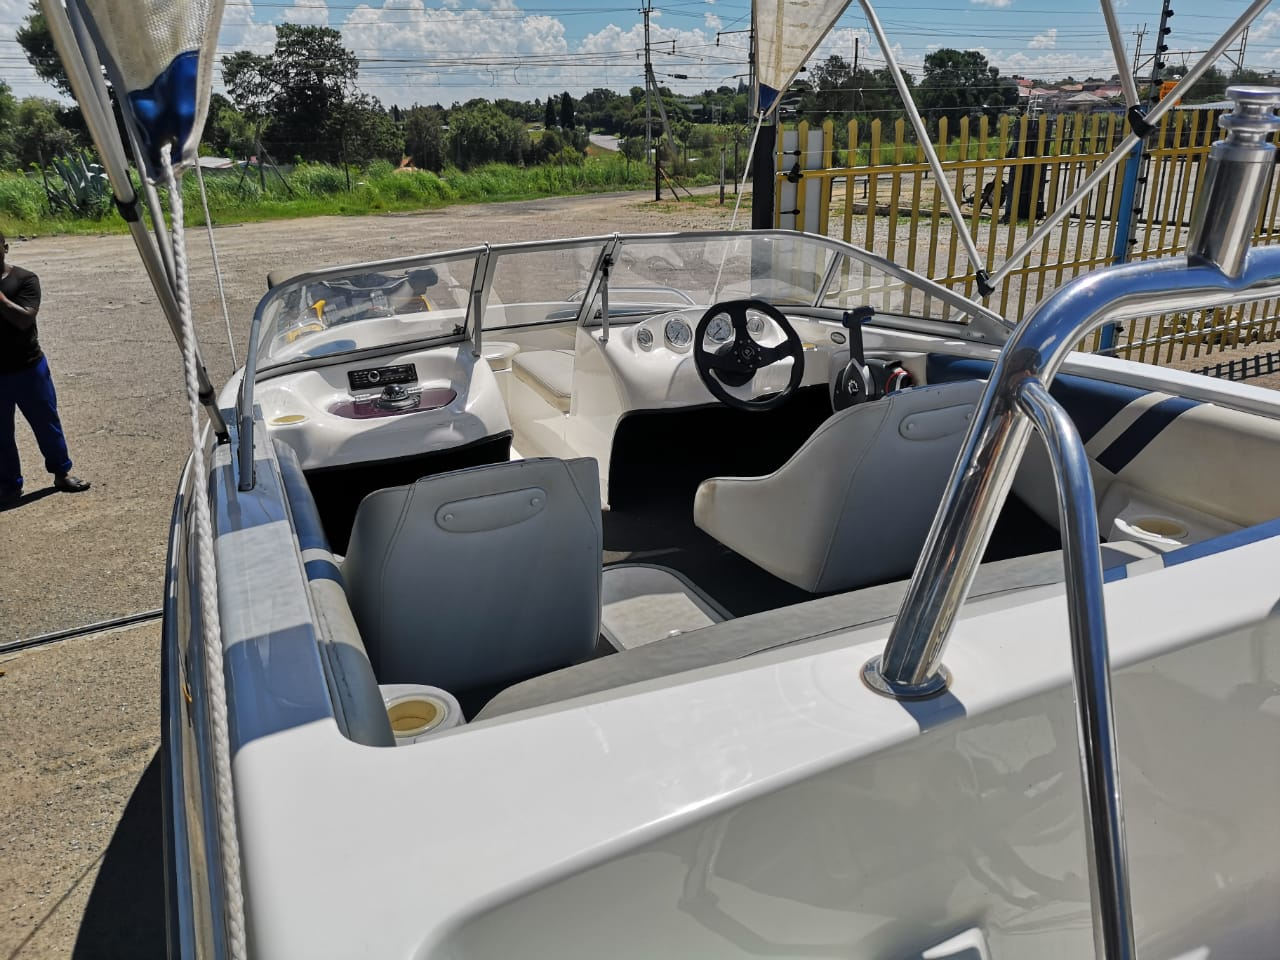 Unity 170, 115Hp Johnson Saltwater Edition